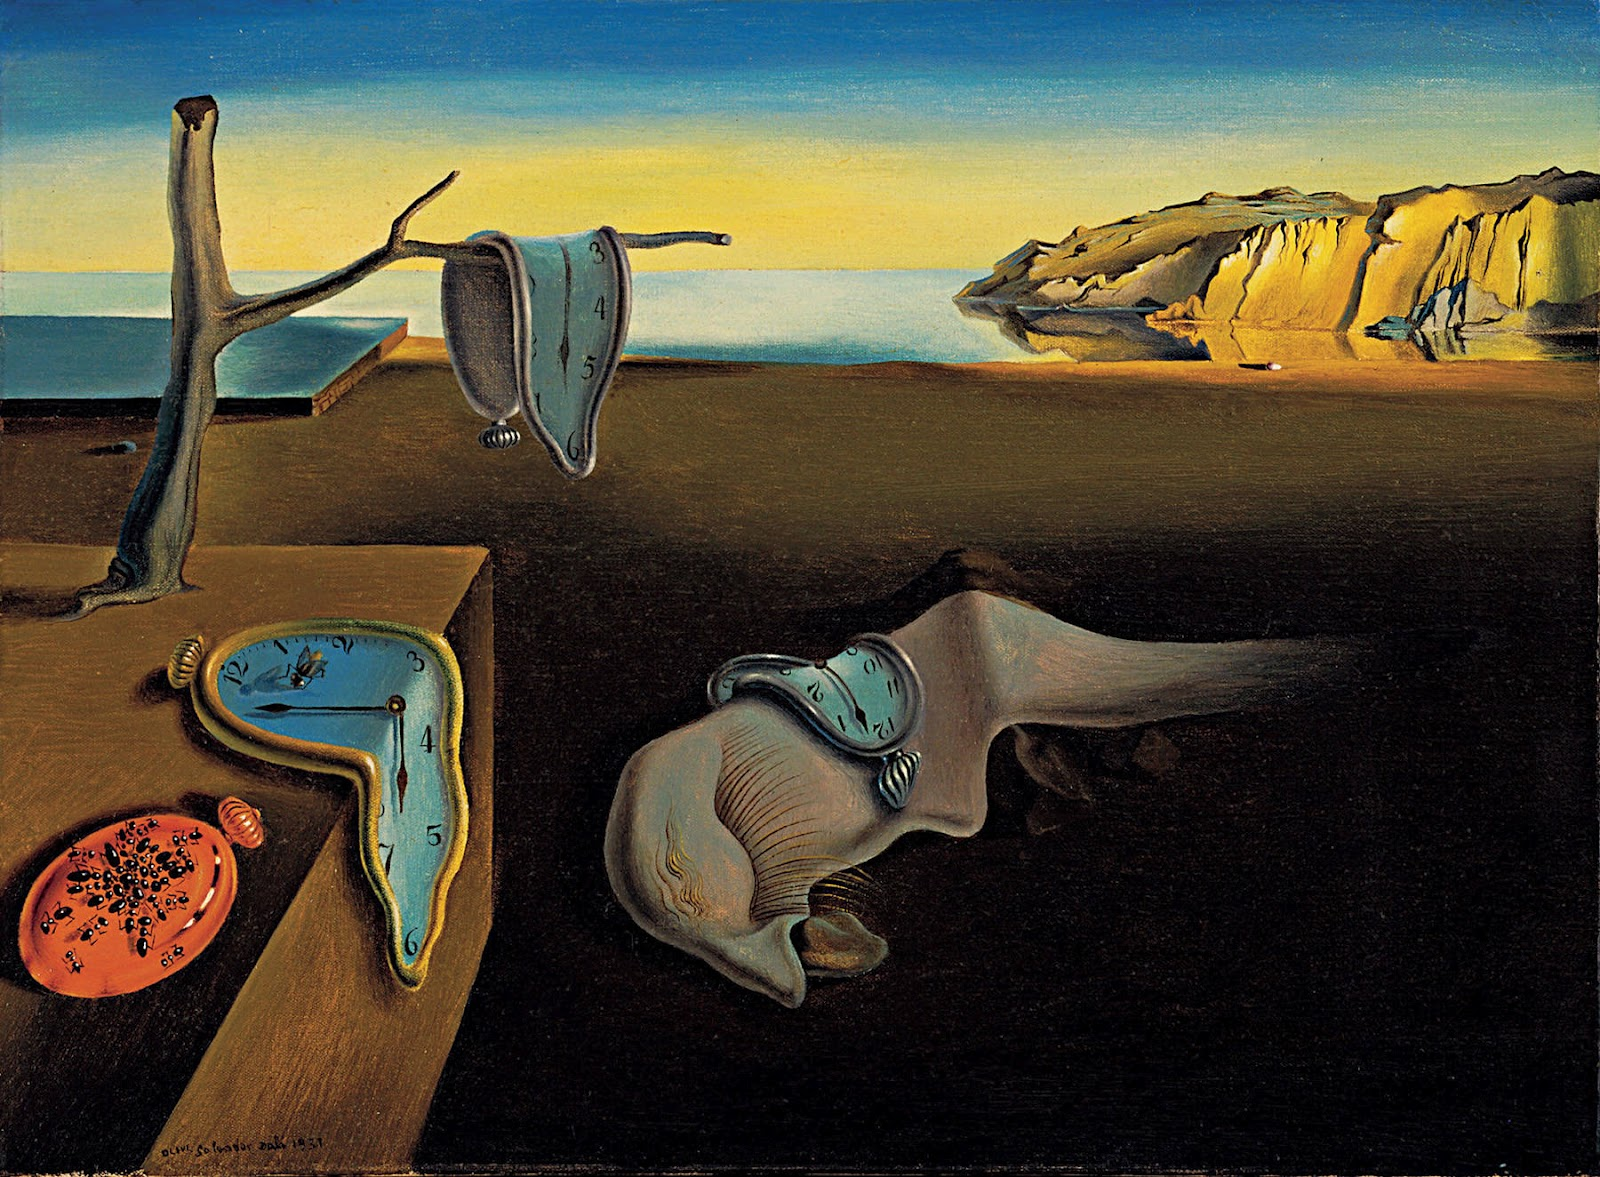 Salvador Dalí (1931)   The Persistence of Memory.  Oil on canvas. Museum of Modern Art, New York.